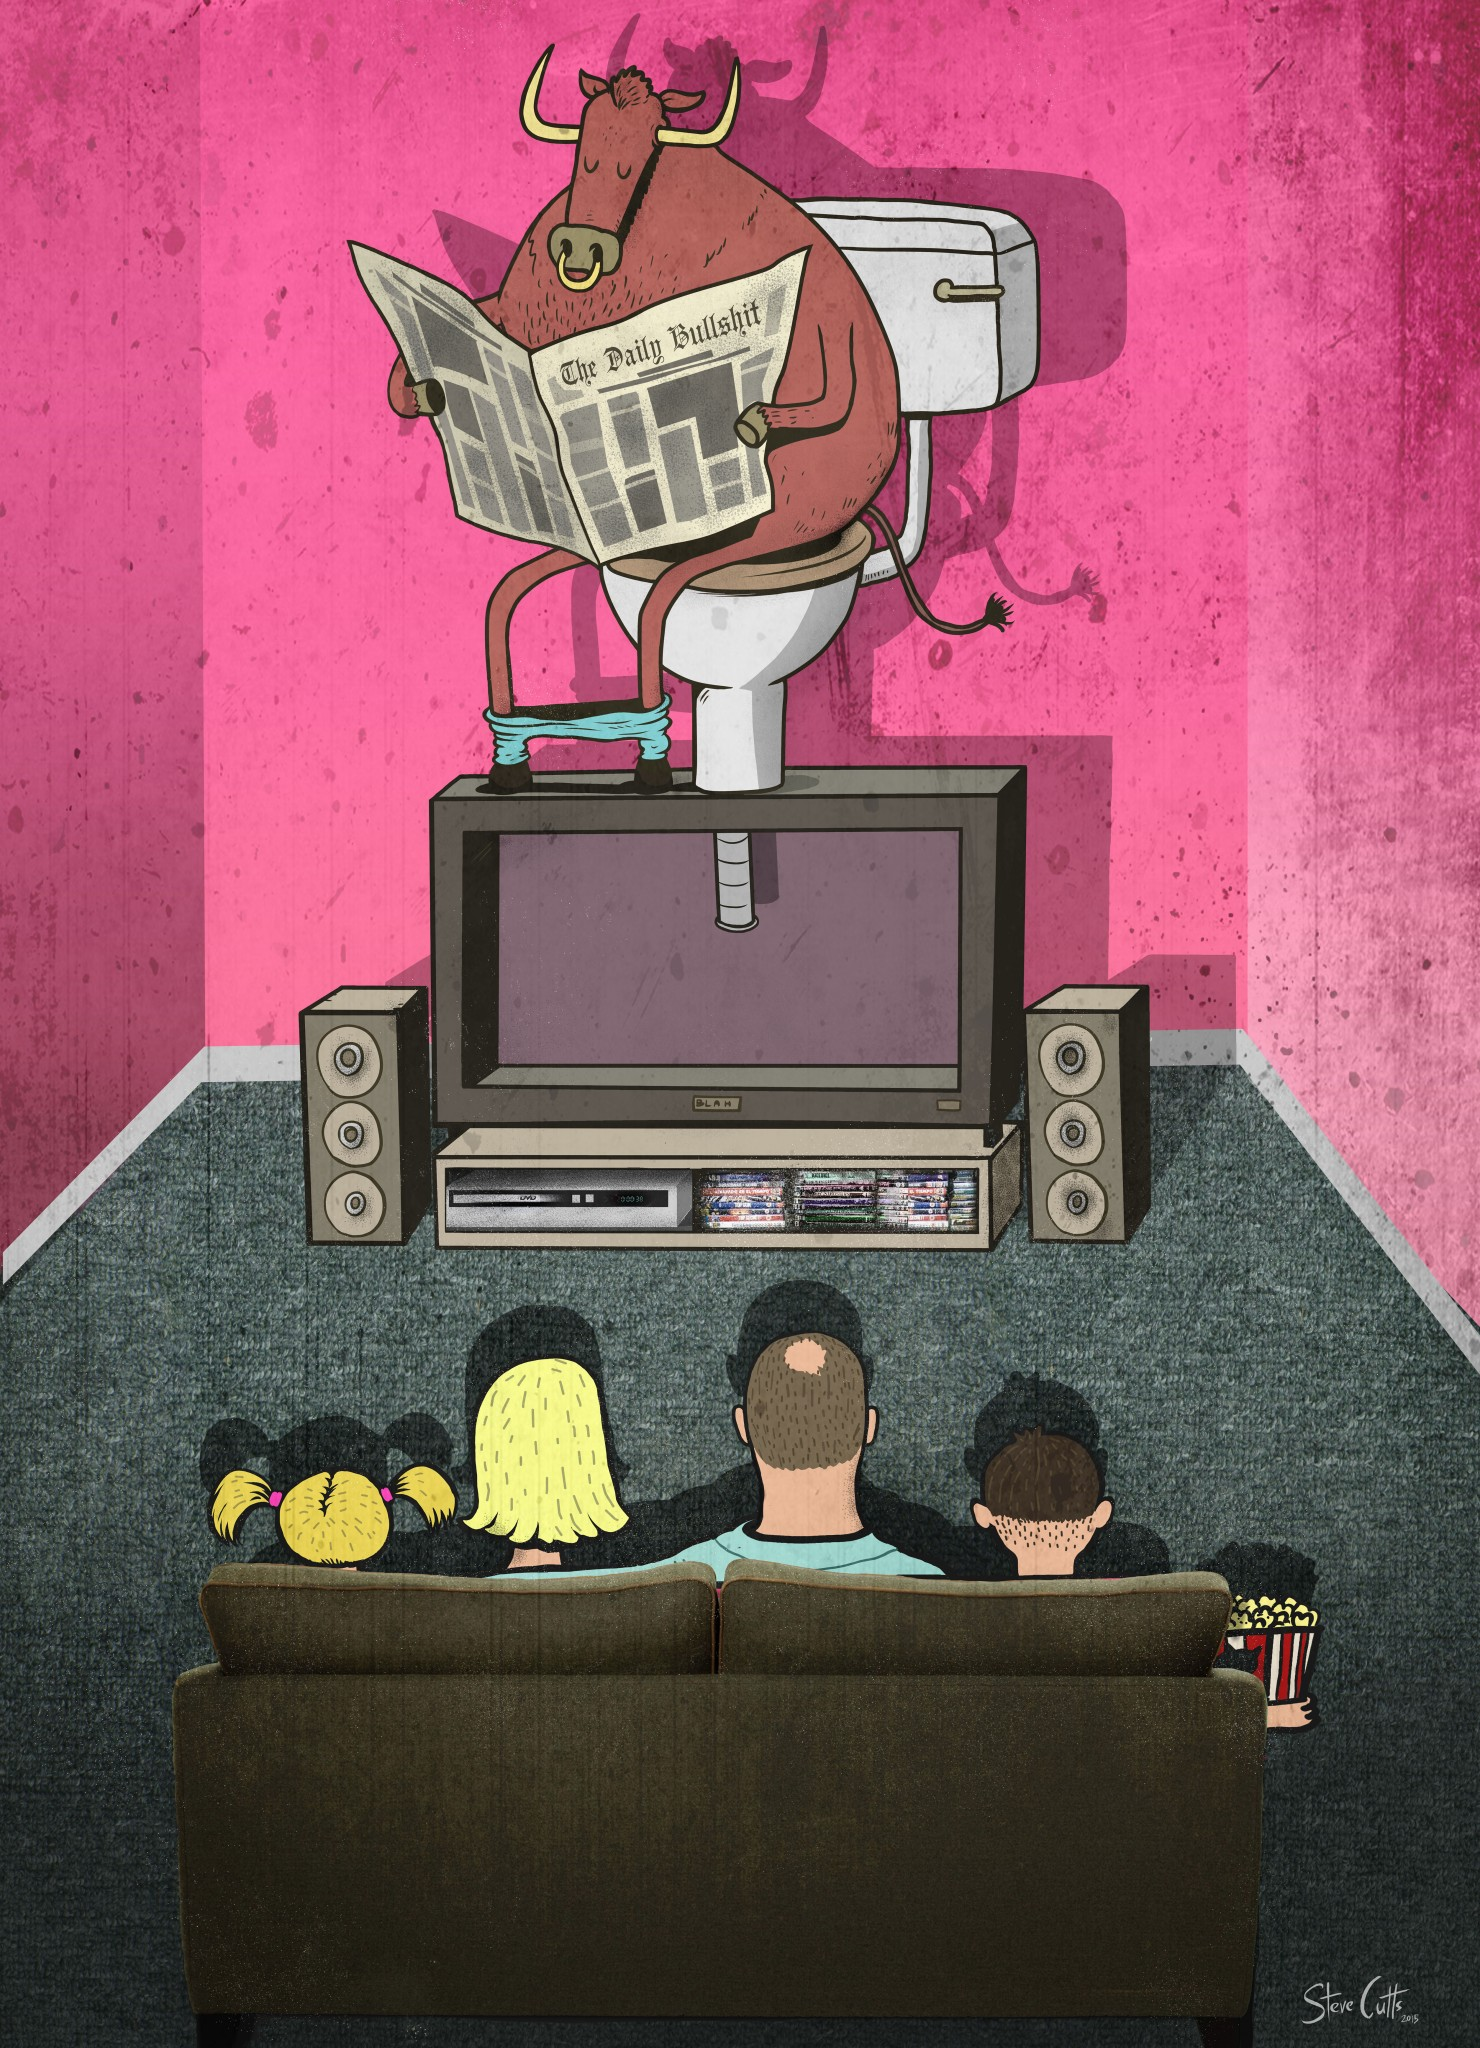 Steve Cutts Bulls*it illustration